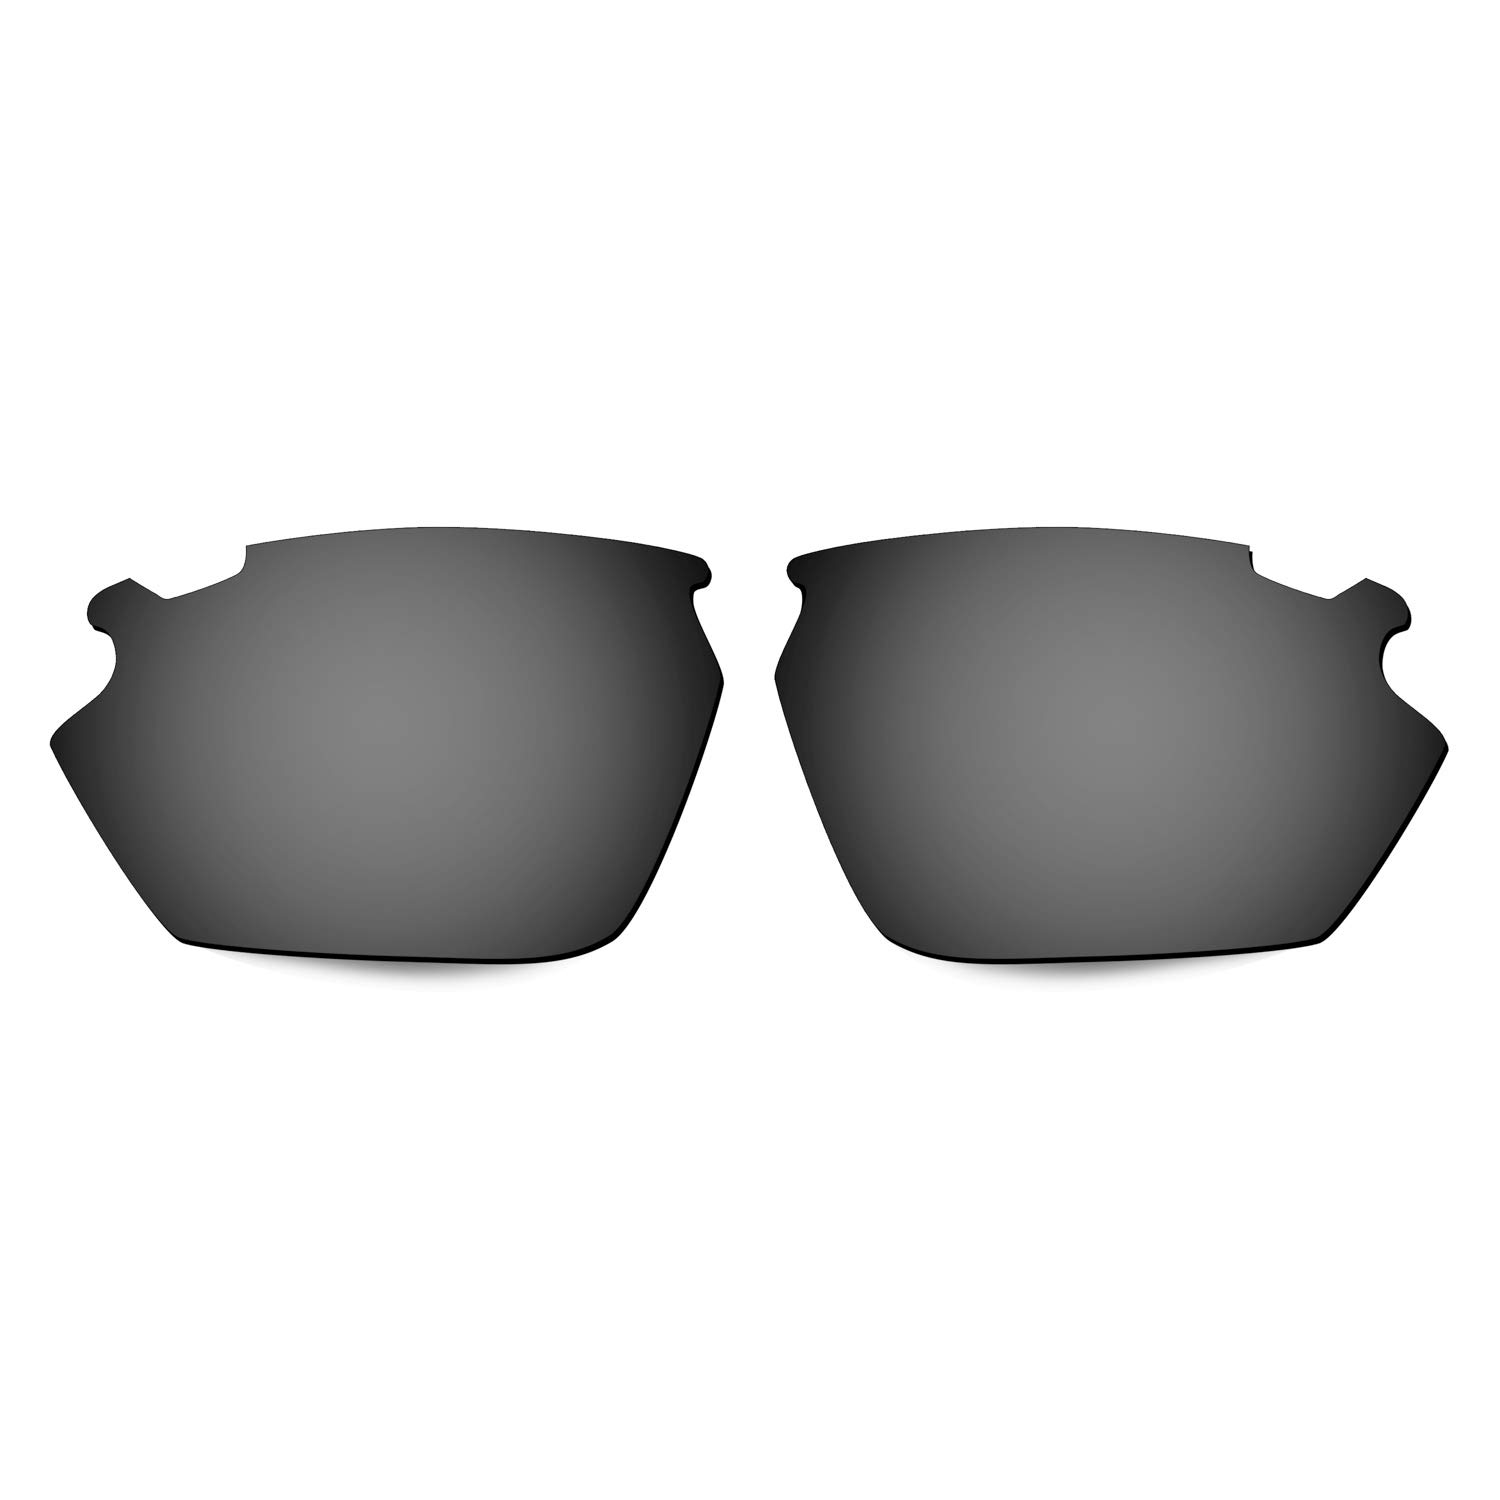 HKUCO Reinforce Replacement Lenses For Rudy Stratofly Sunglasses Black Polarized